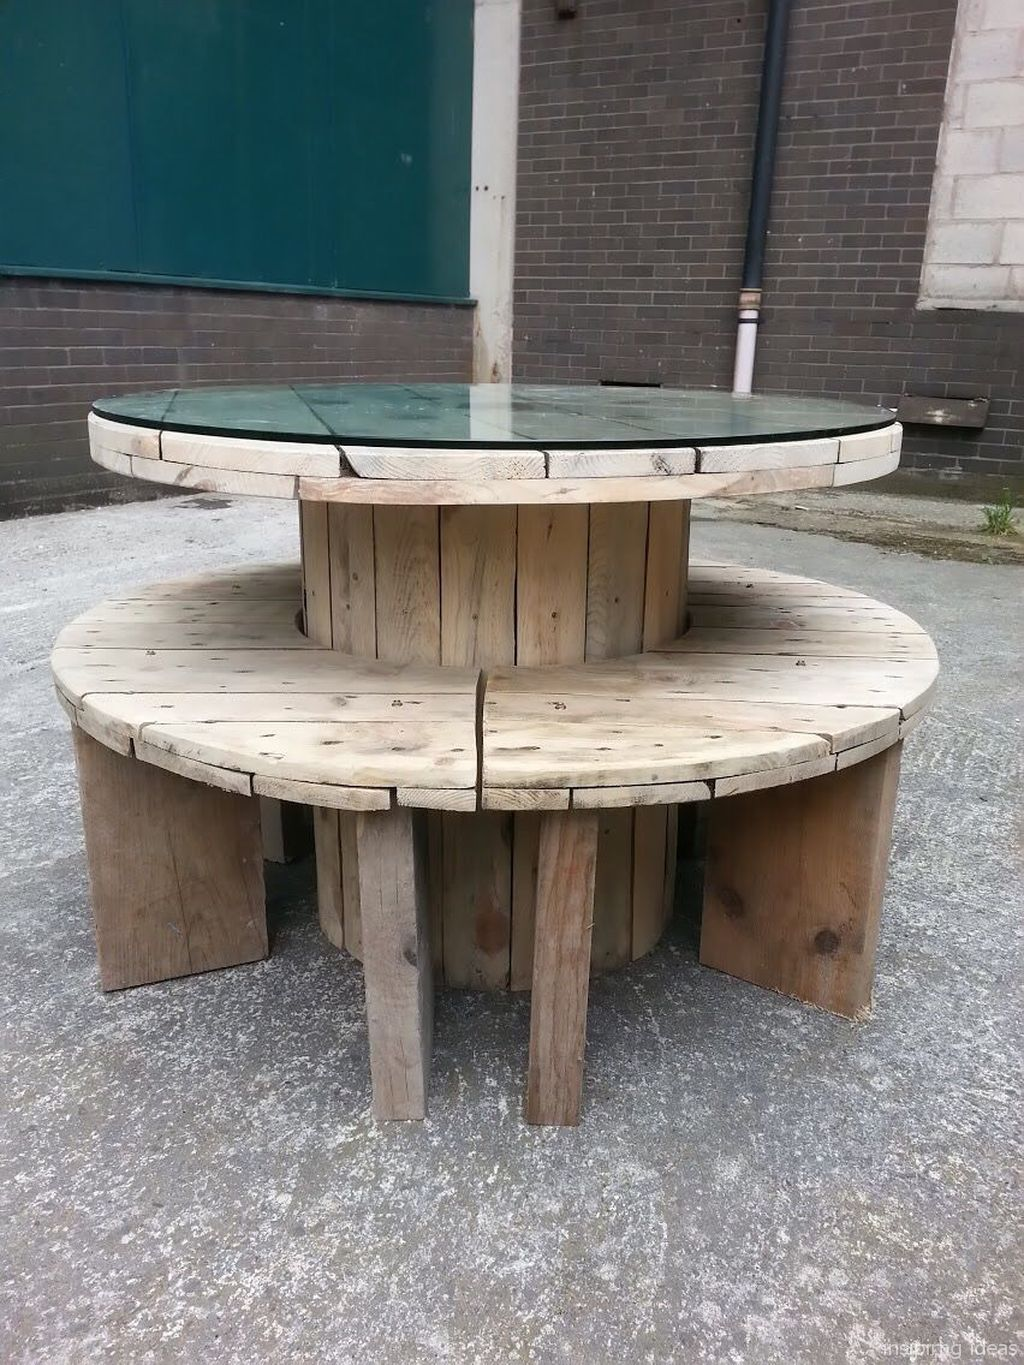 70 diy upcycled spool project ideas for outdoor furniture on inventive ideas to utilize reclaimed wood pallet projects all you must to know id=90840